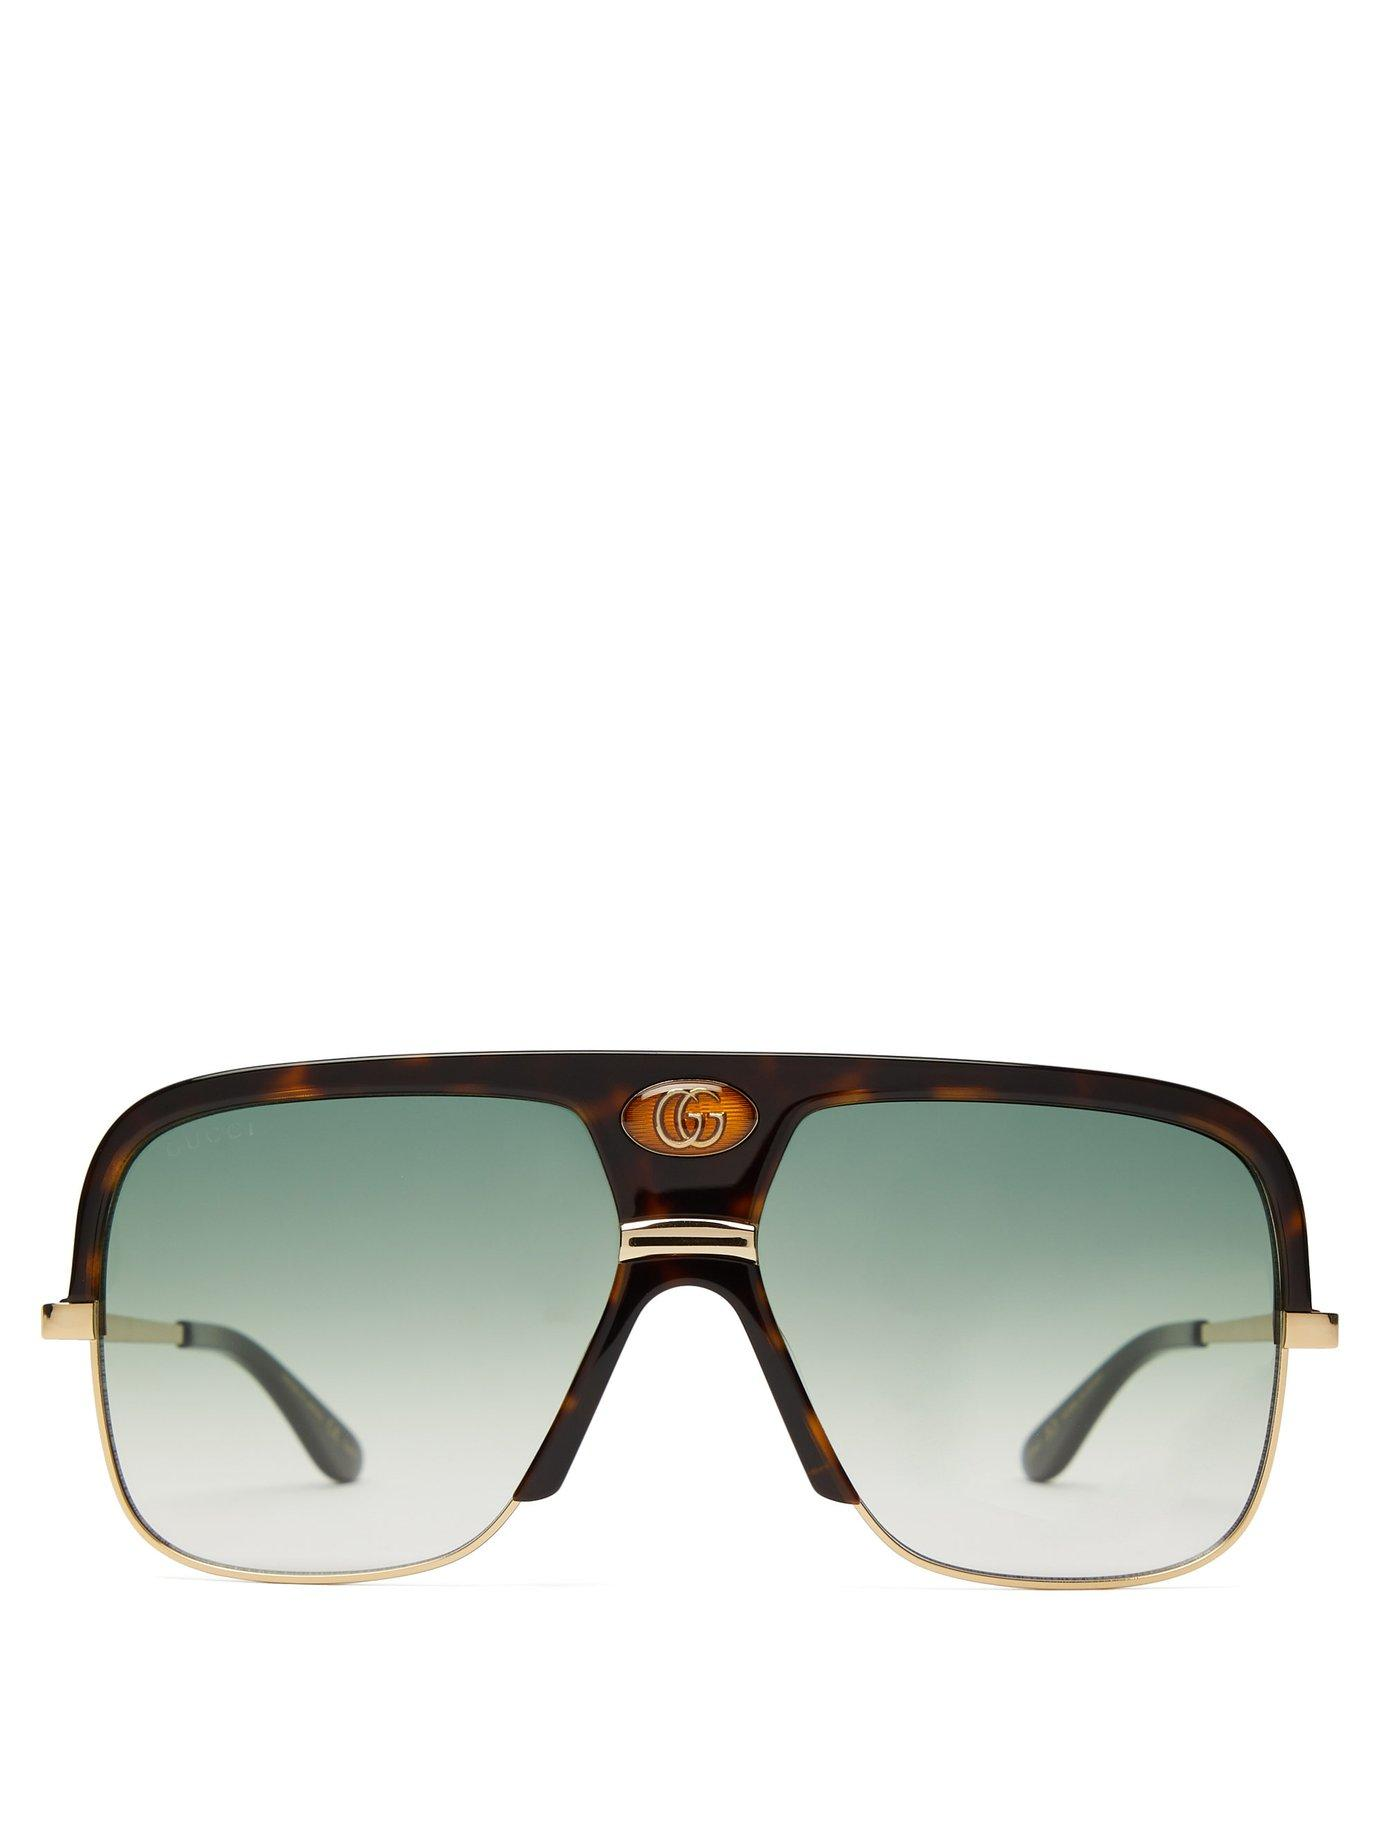 809524eacc2 Lyst - Gucci Gg Aviator Frame Tortoiseshell Acetate Sunglasses for Men